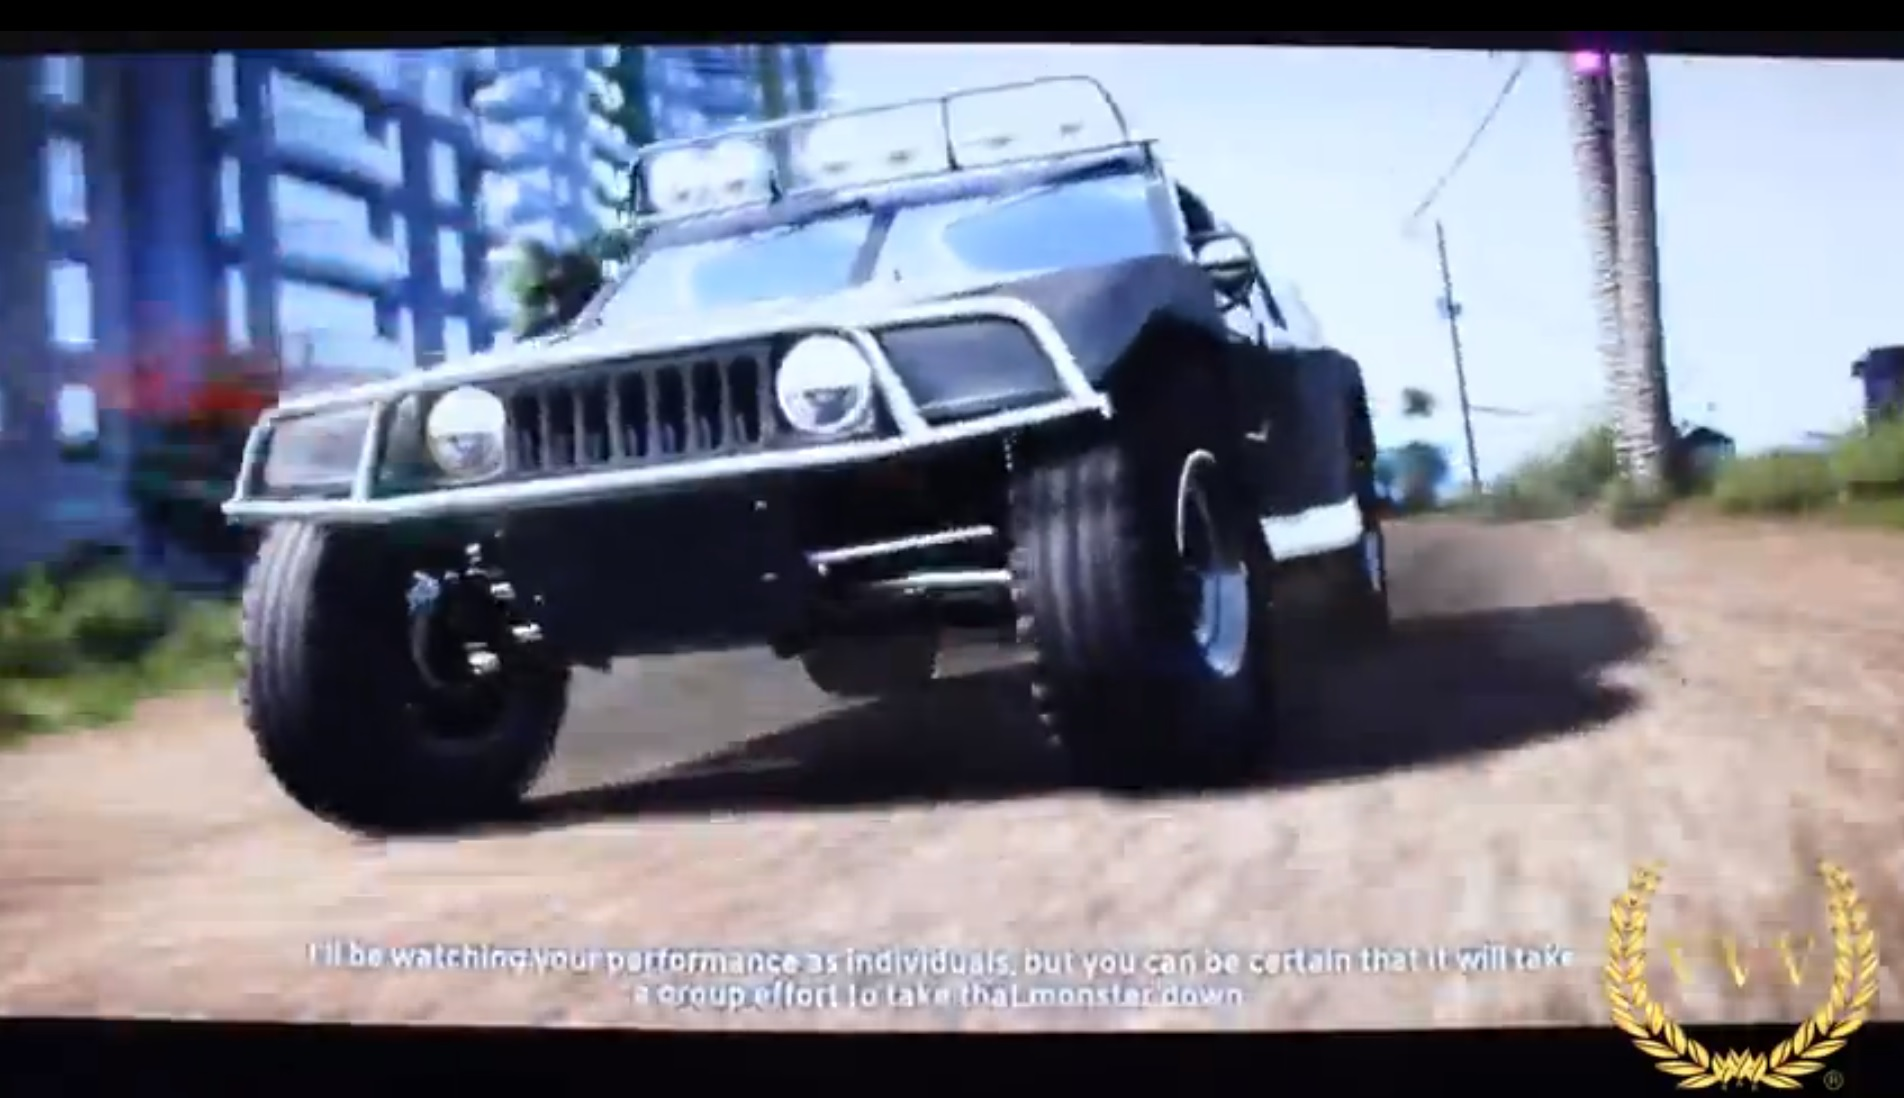 The Crew action-packed E3 multiplayer gameplay